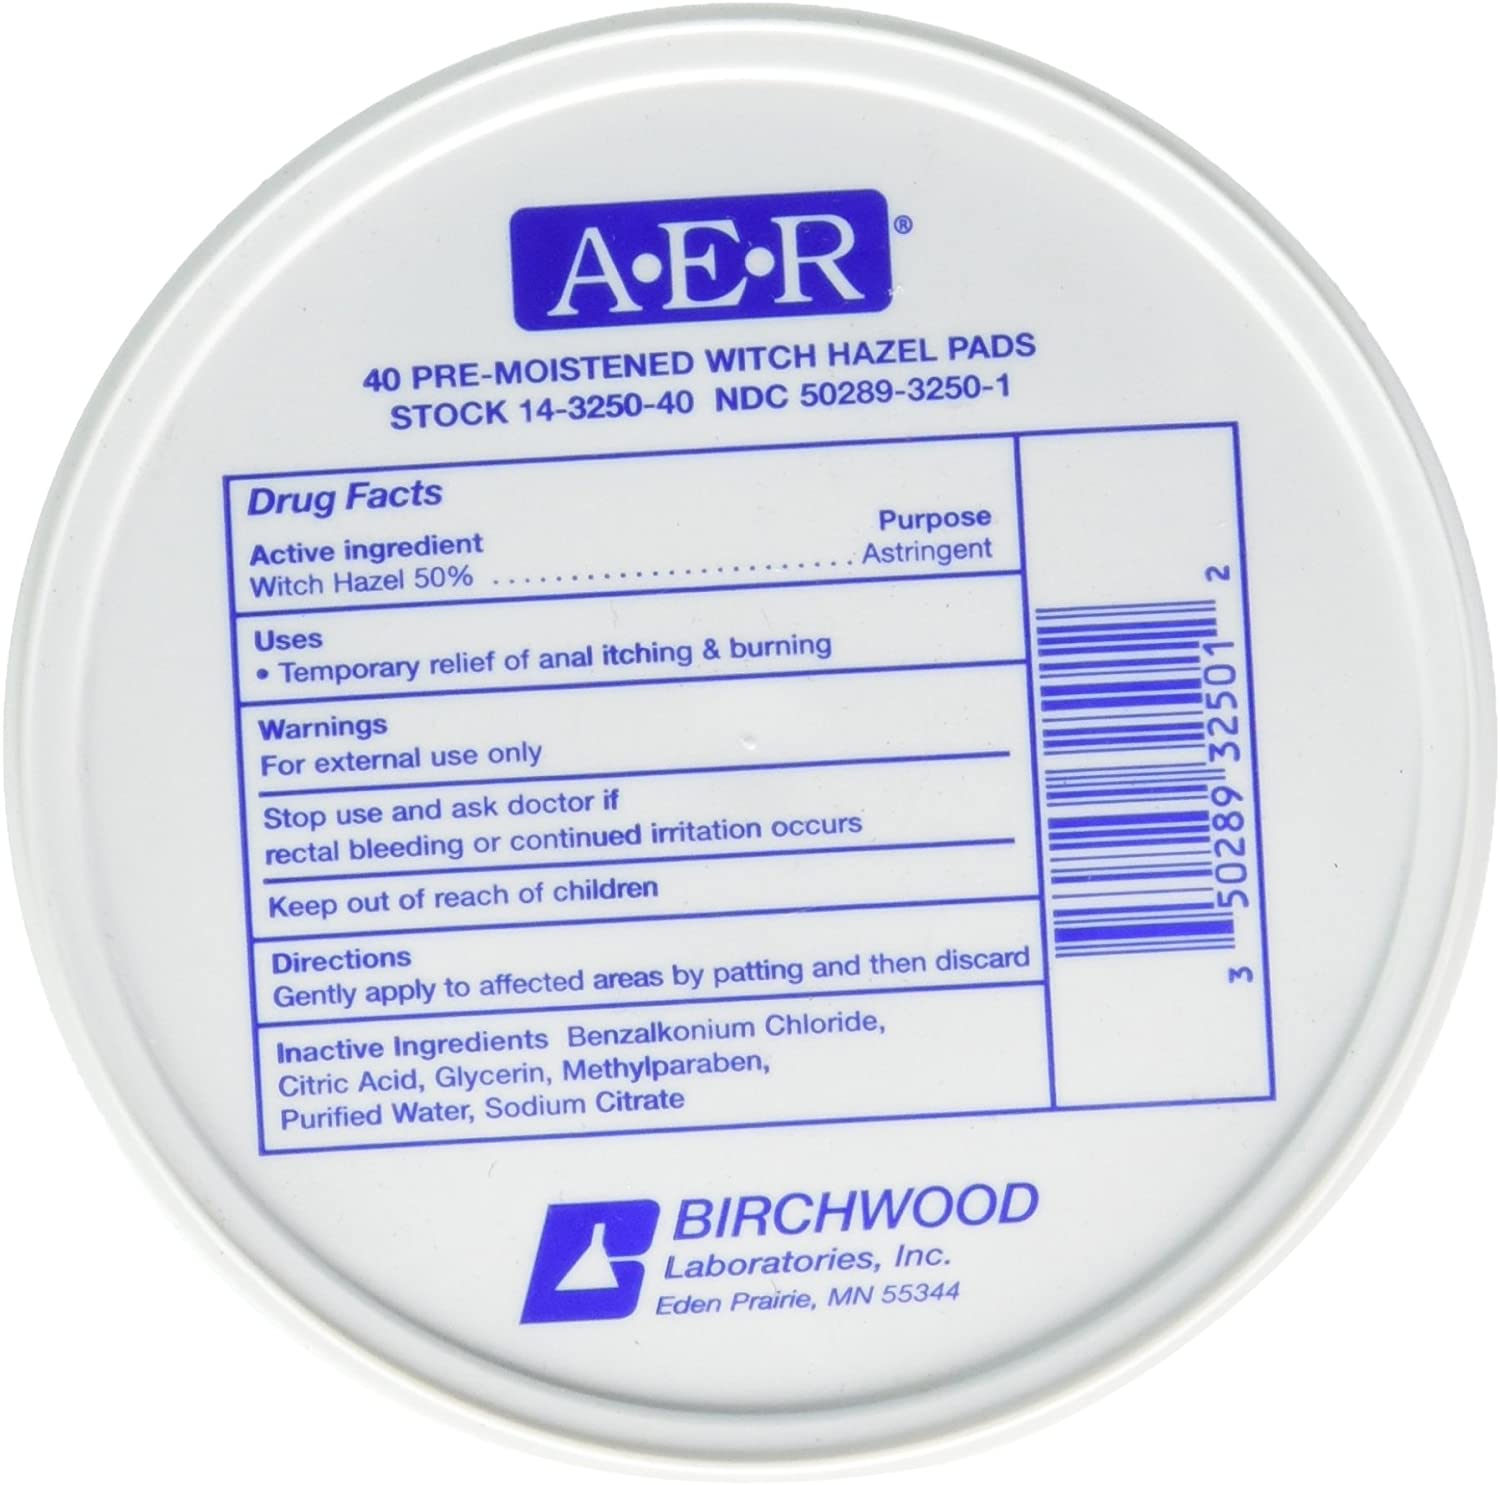 Amazon Com Birchwood Laboratories A E R Pre Moistened Witch Hazel Pads 80 Count Health Personal Care